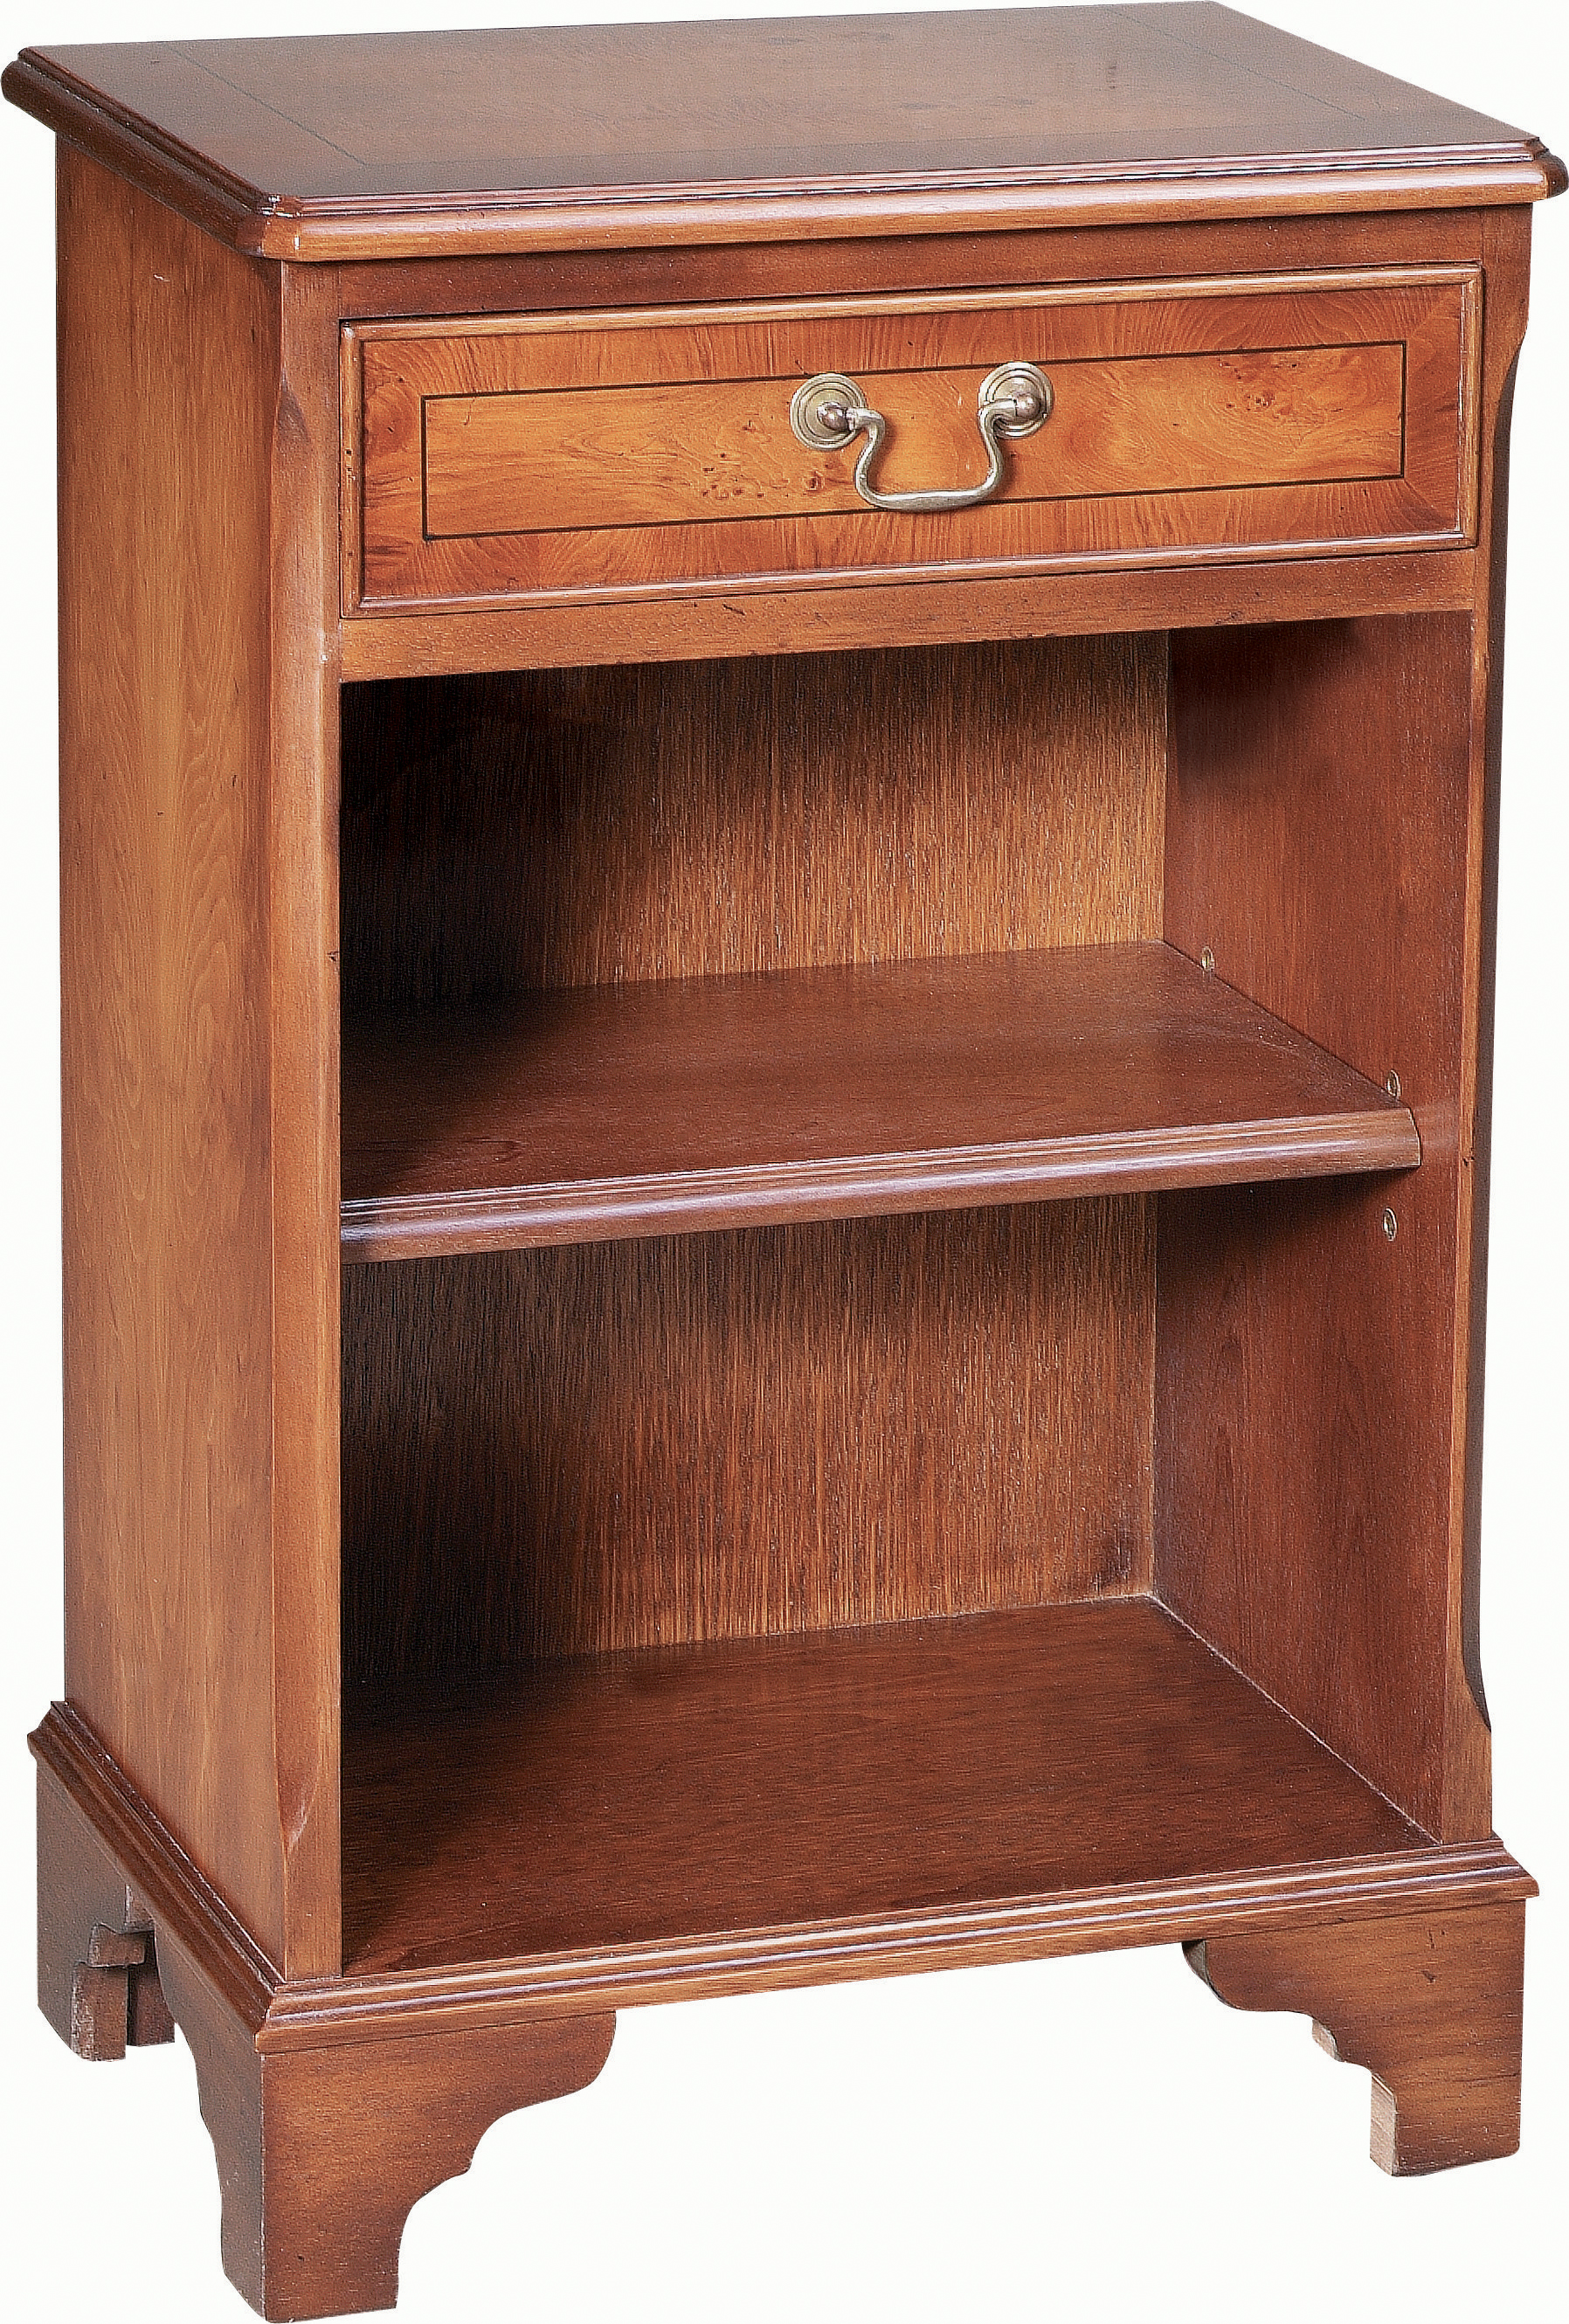 Small Open Bookcase 1 Drawer - Bookcases